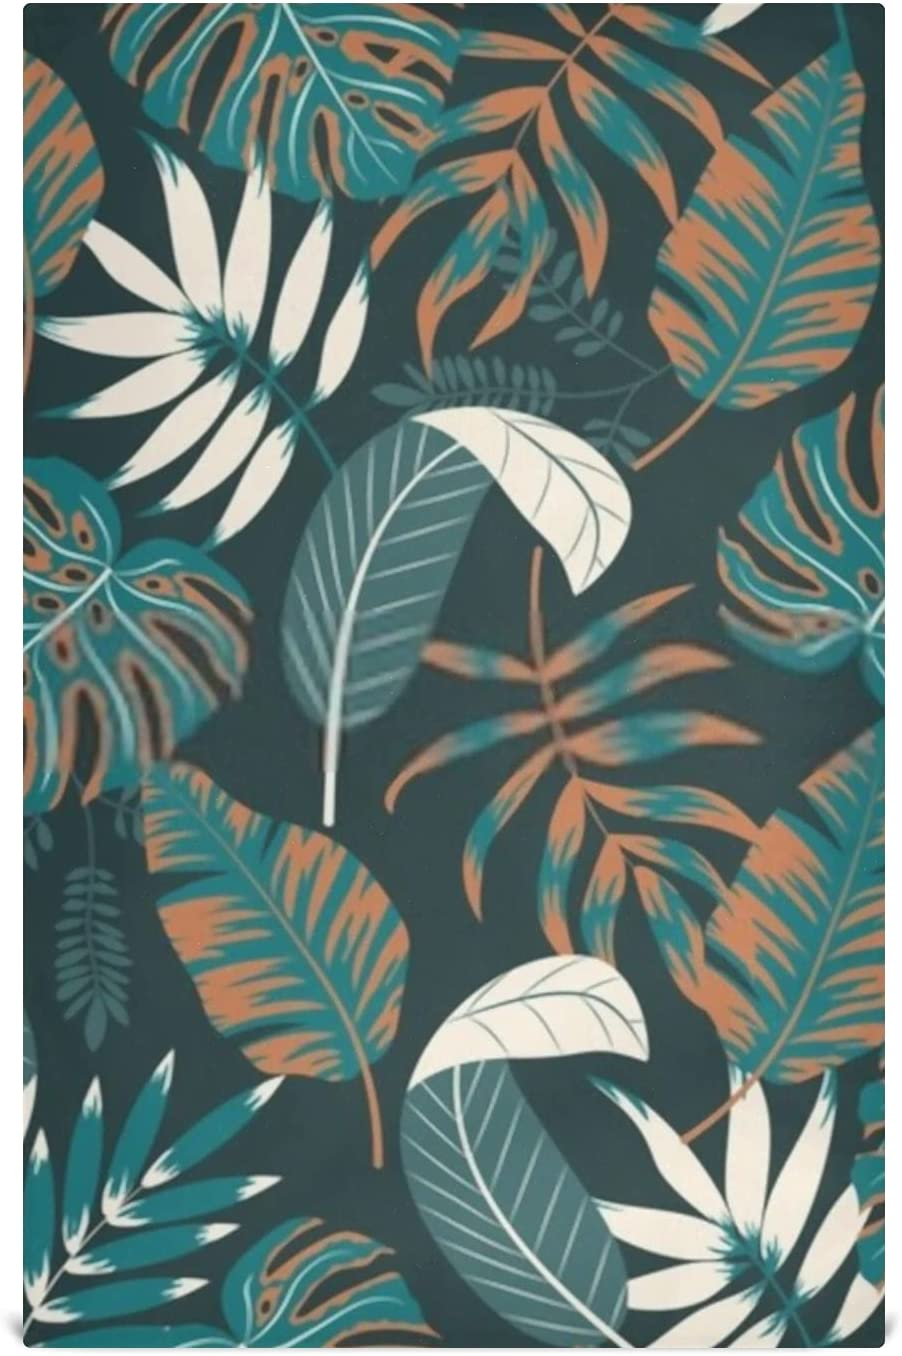 HJSHG Now free shipping Kitchen Dish Towel Set Leaves To Very popular 6 Tropical Plants